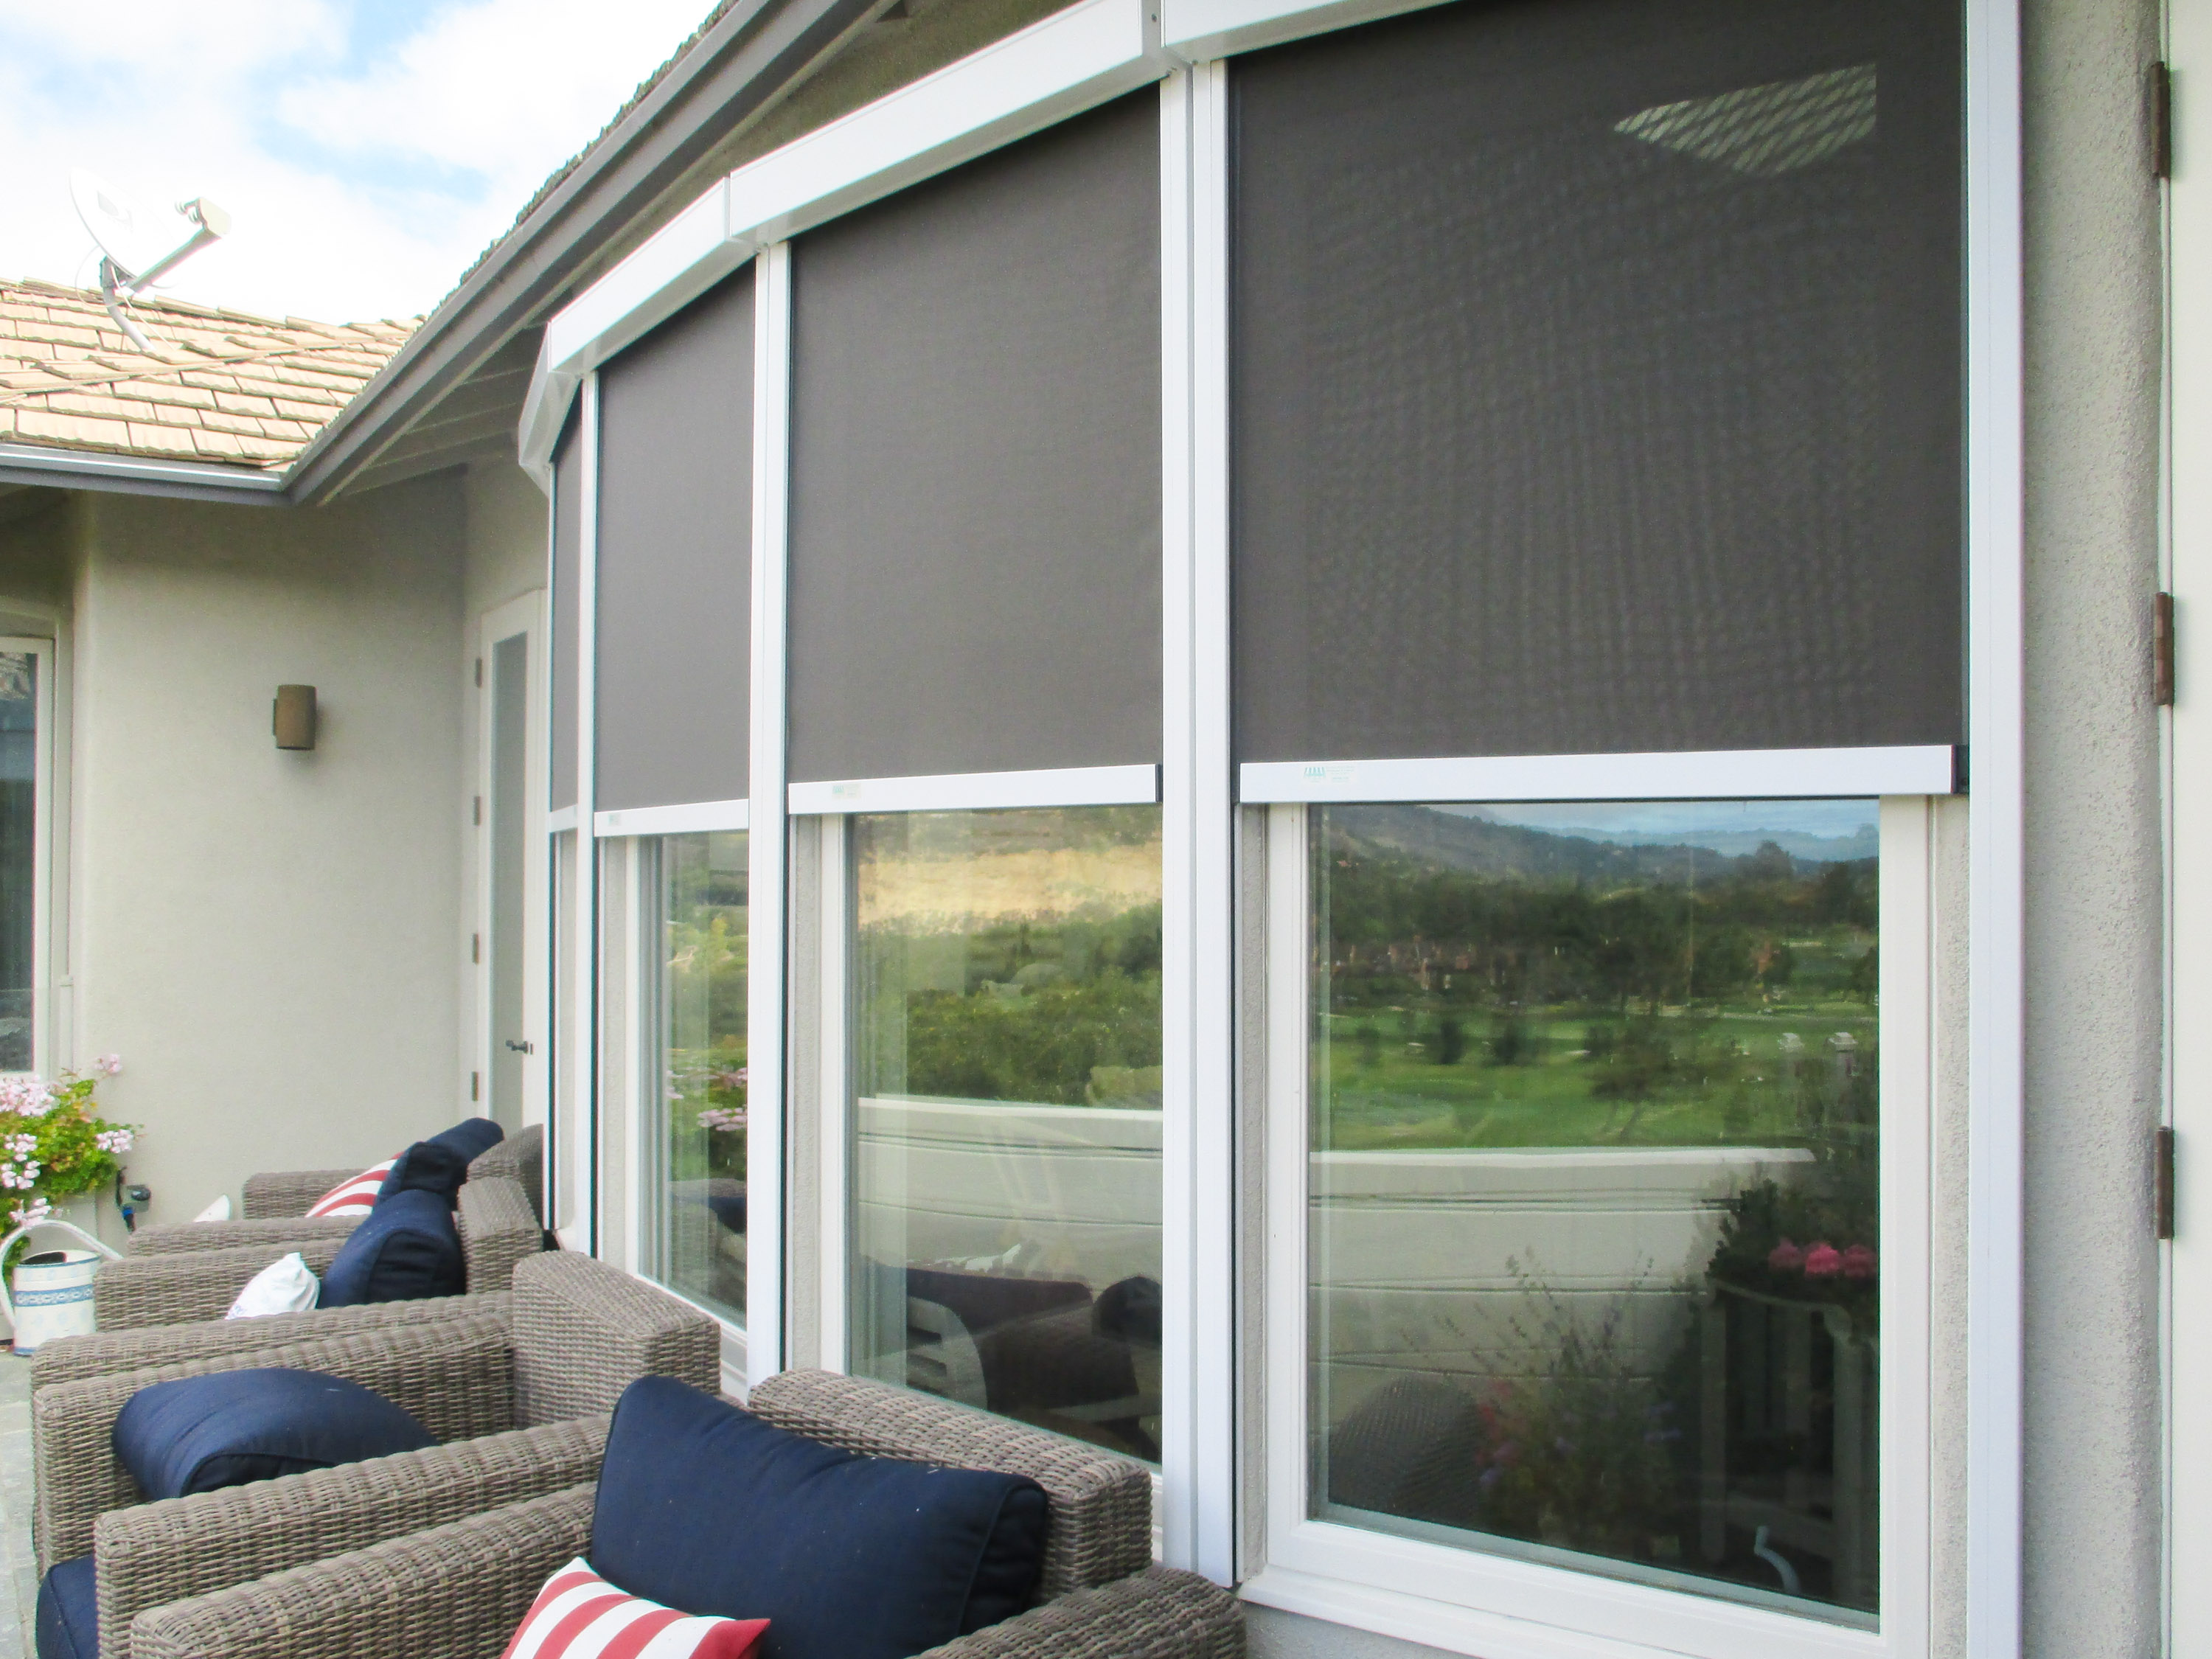 Retractable Solar Screens | ERS Shading | San Jose, CA for Window Coverings Outside  535wja